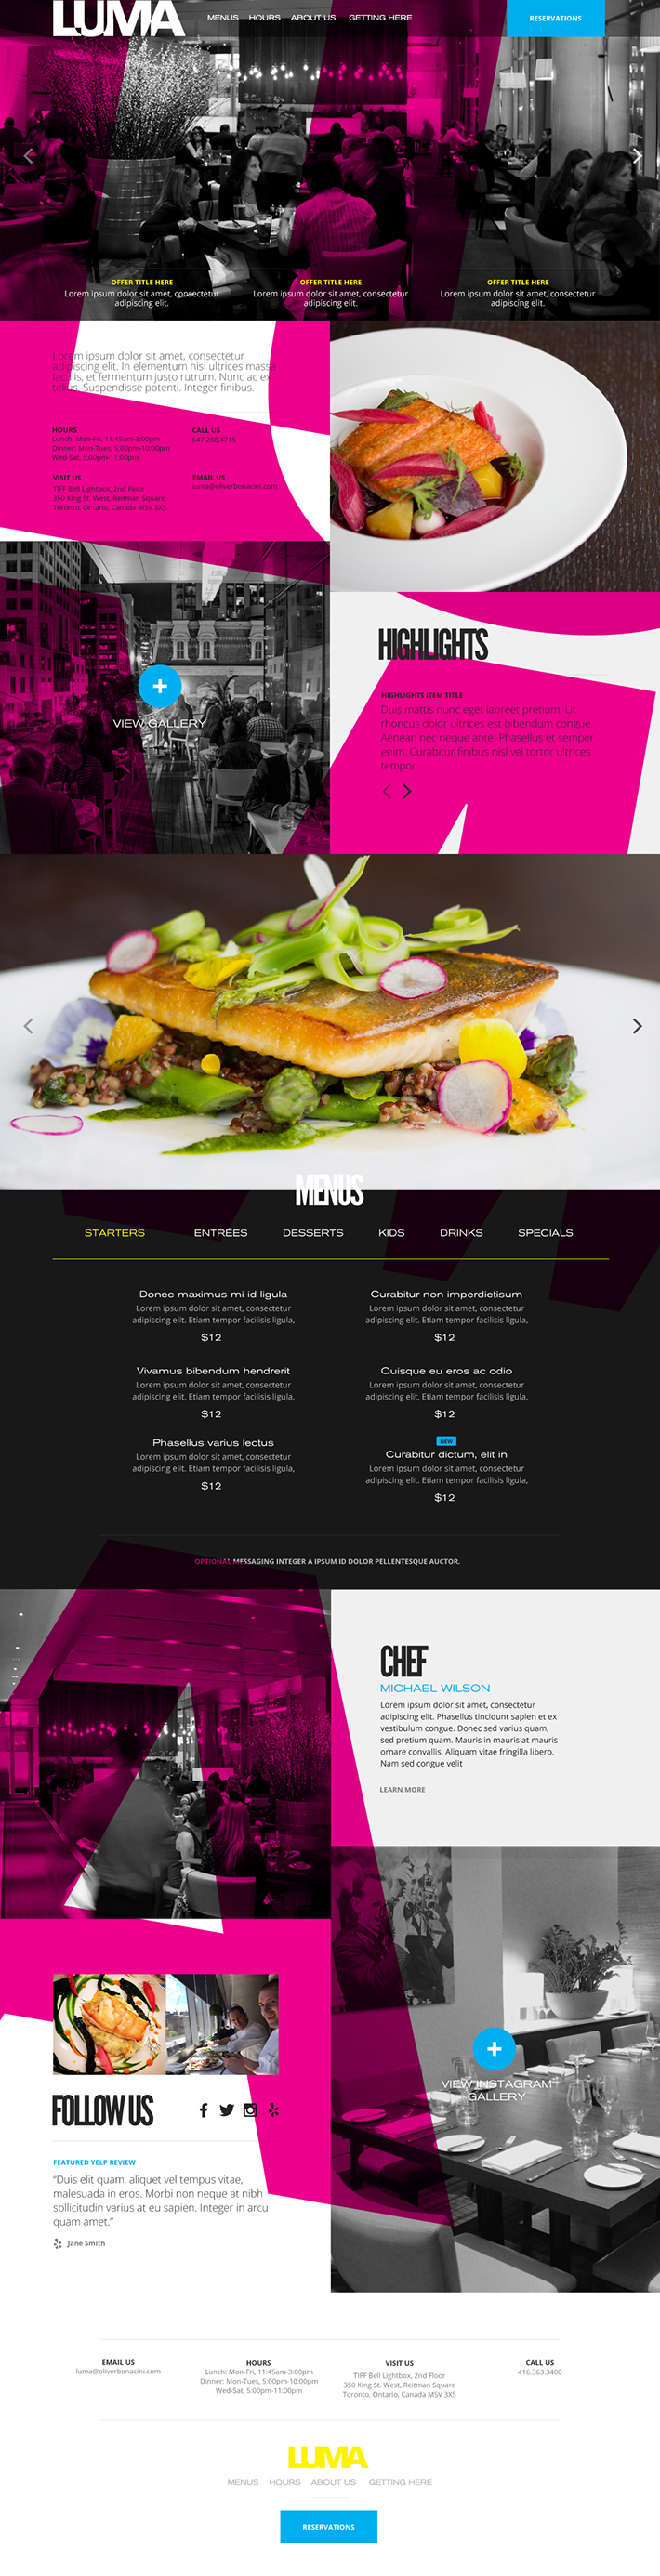 Luma Restaurant Magenta Website Concept by Agency Dominion on Behance